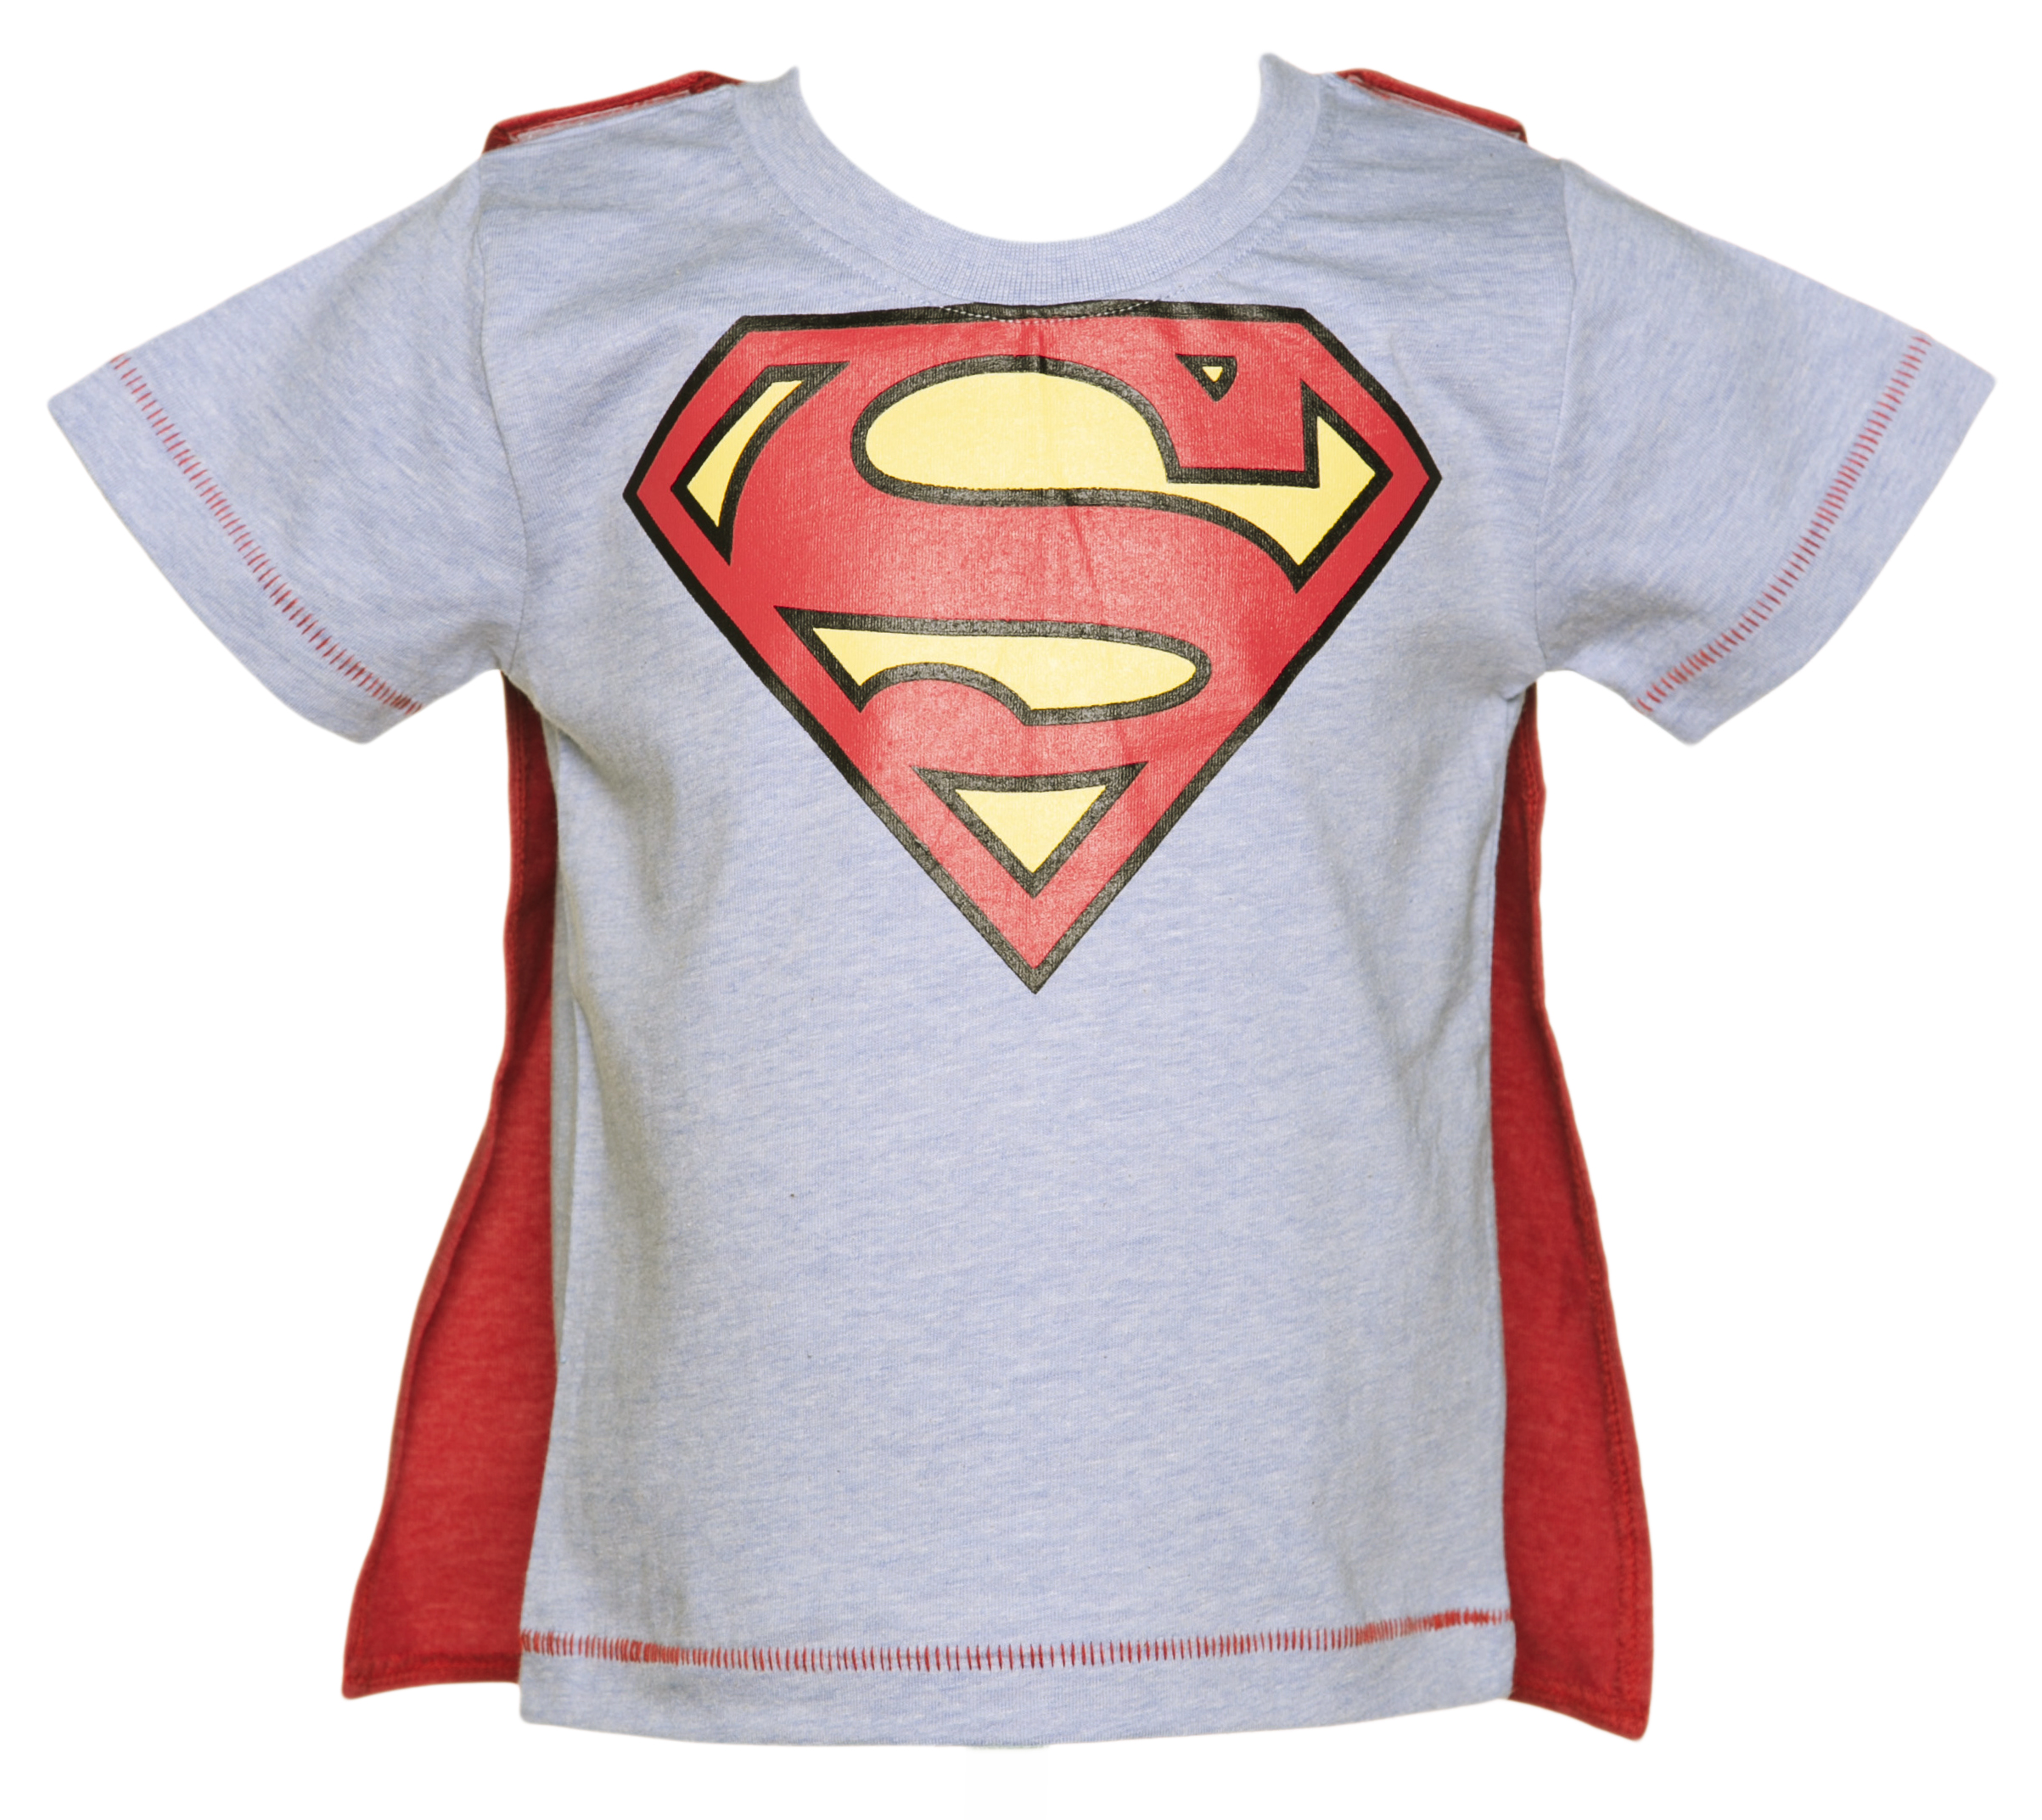 Superman Logo T-Shirt With Cape